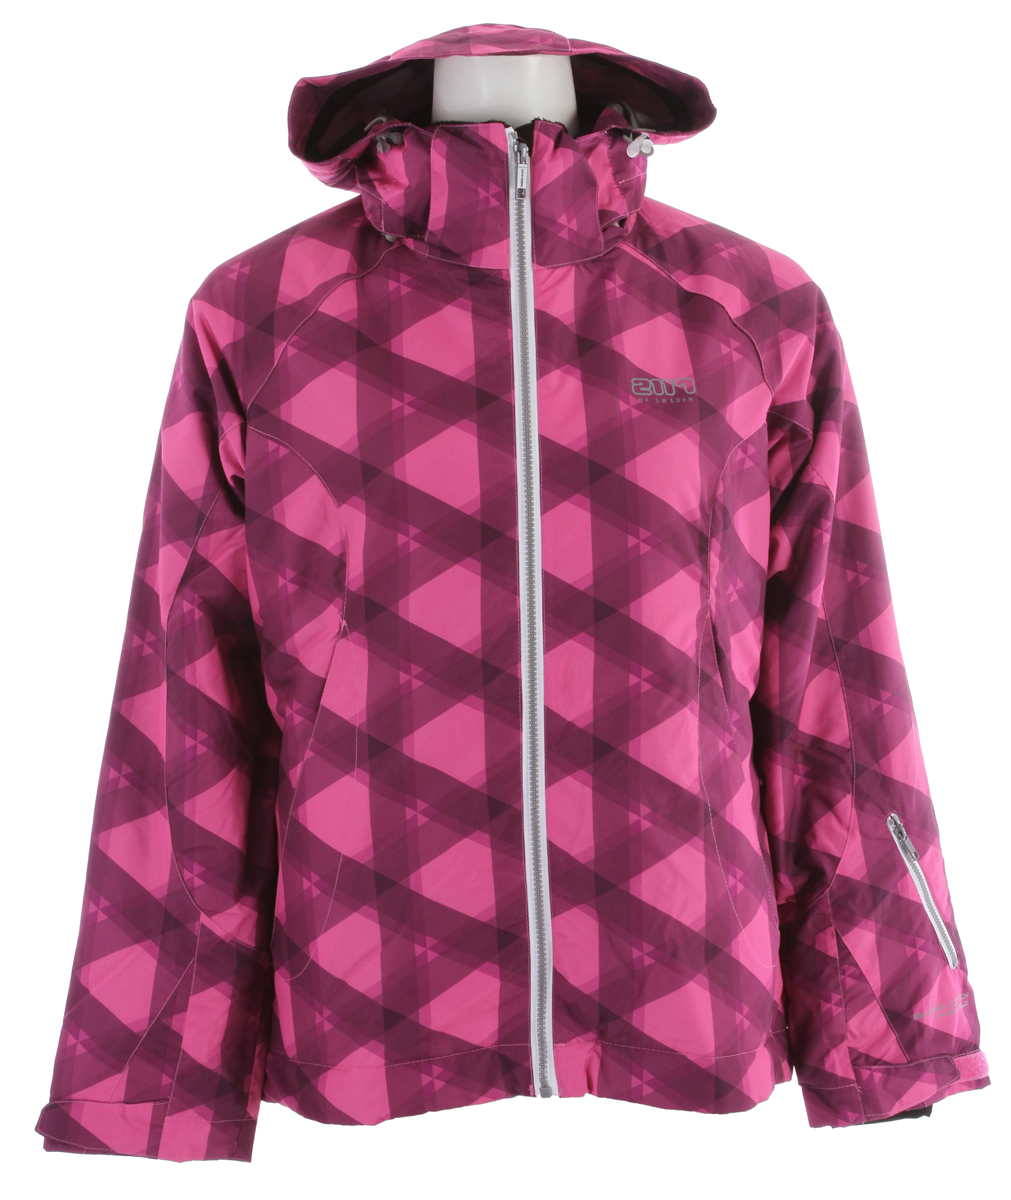 Ski The Uppland Ski jacket has a luxurious face fabric that is quiet and subtle. The on-mountain specific details like removable powder skirt with rubber taping to keep it from riding up while you're riding down, zippered pit zips will allow to dump excess heat to keep you cool in height of the day and 4-way stretch comfort cuffs will keep the snow out of those prominent hot spots. Complimented by the technical features of our Shieldtex waterproof/breathable fabrics fends off soggy snow while allowing sweaty vapors to escape from within from dawn to dusk. When the chill of the day rolls in for the evening you will be rocking the Uppland Jacket with the faux fur trim zipped up to your ears for the ultimate hug. Key Features of the 2117 Uppland Snowboard Jacket: 8,000mm Waterproof 3,000g Breathability Light padded Snowboard jacket Two side pockets Snowboard card pocket on lower left sleeve Elastic cuff in sleeve end Drawstring ni waist Snow gaiter Removable hood - $77.97